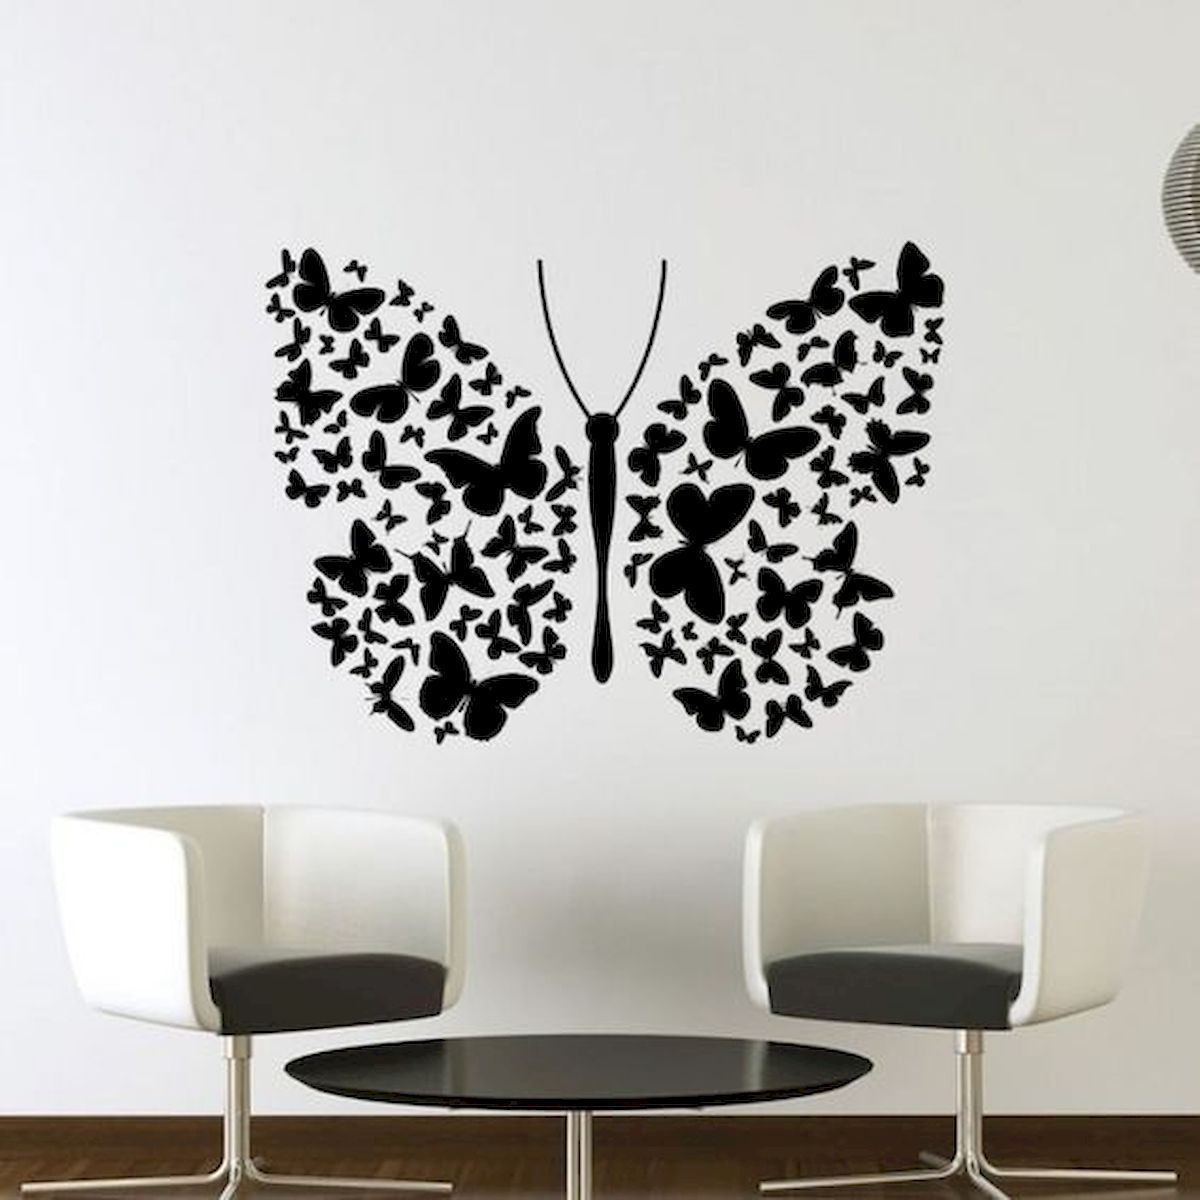 44 Awesome Wall Painting Ideas To Decorate Your Home Diy Wall